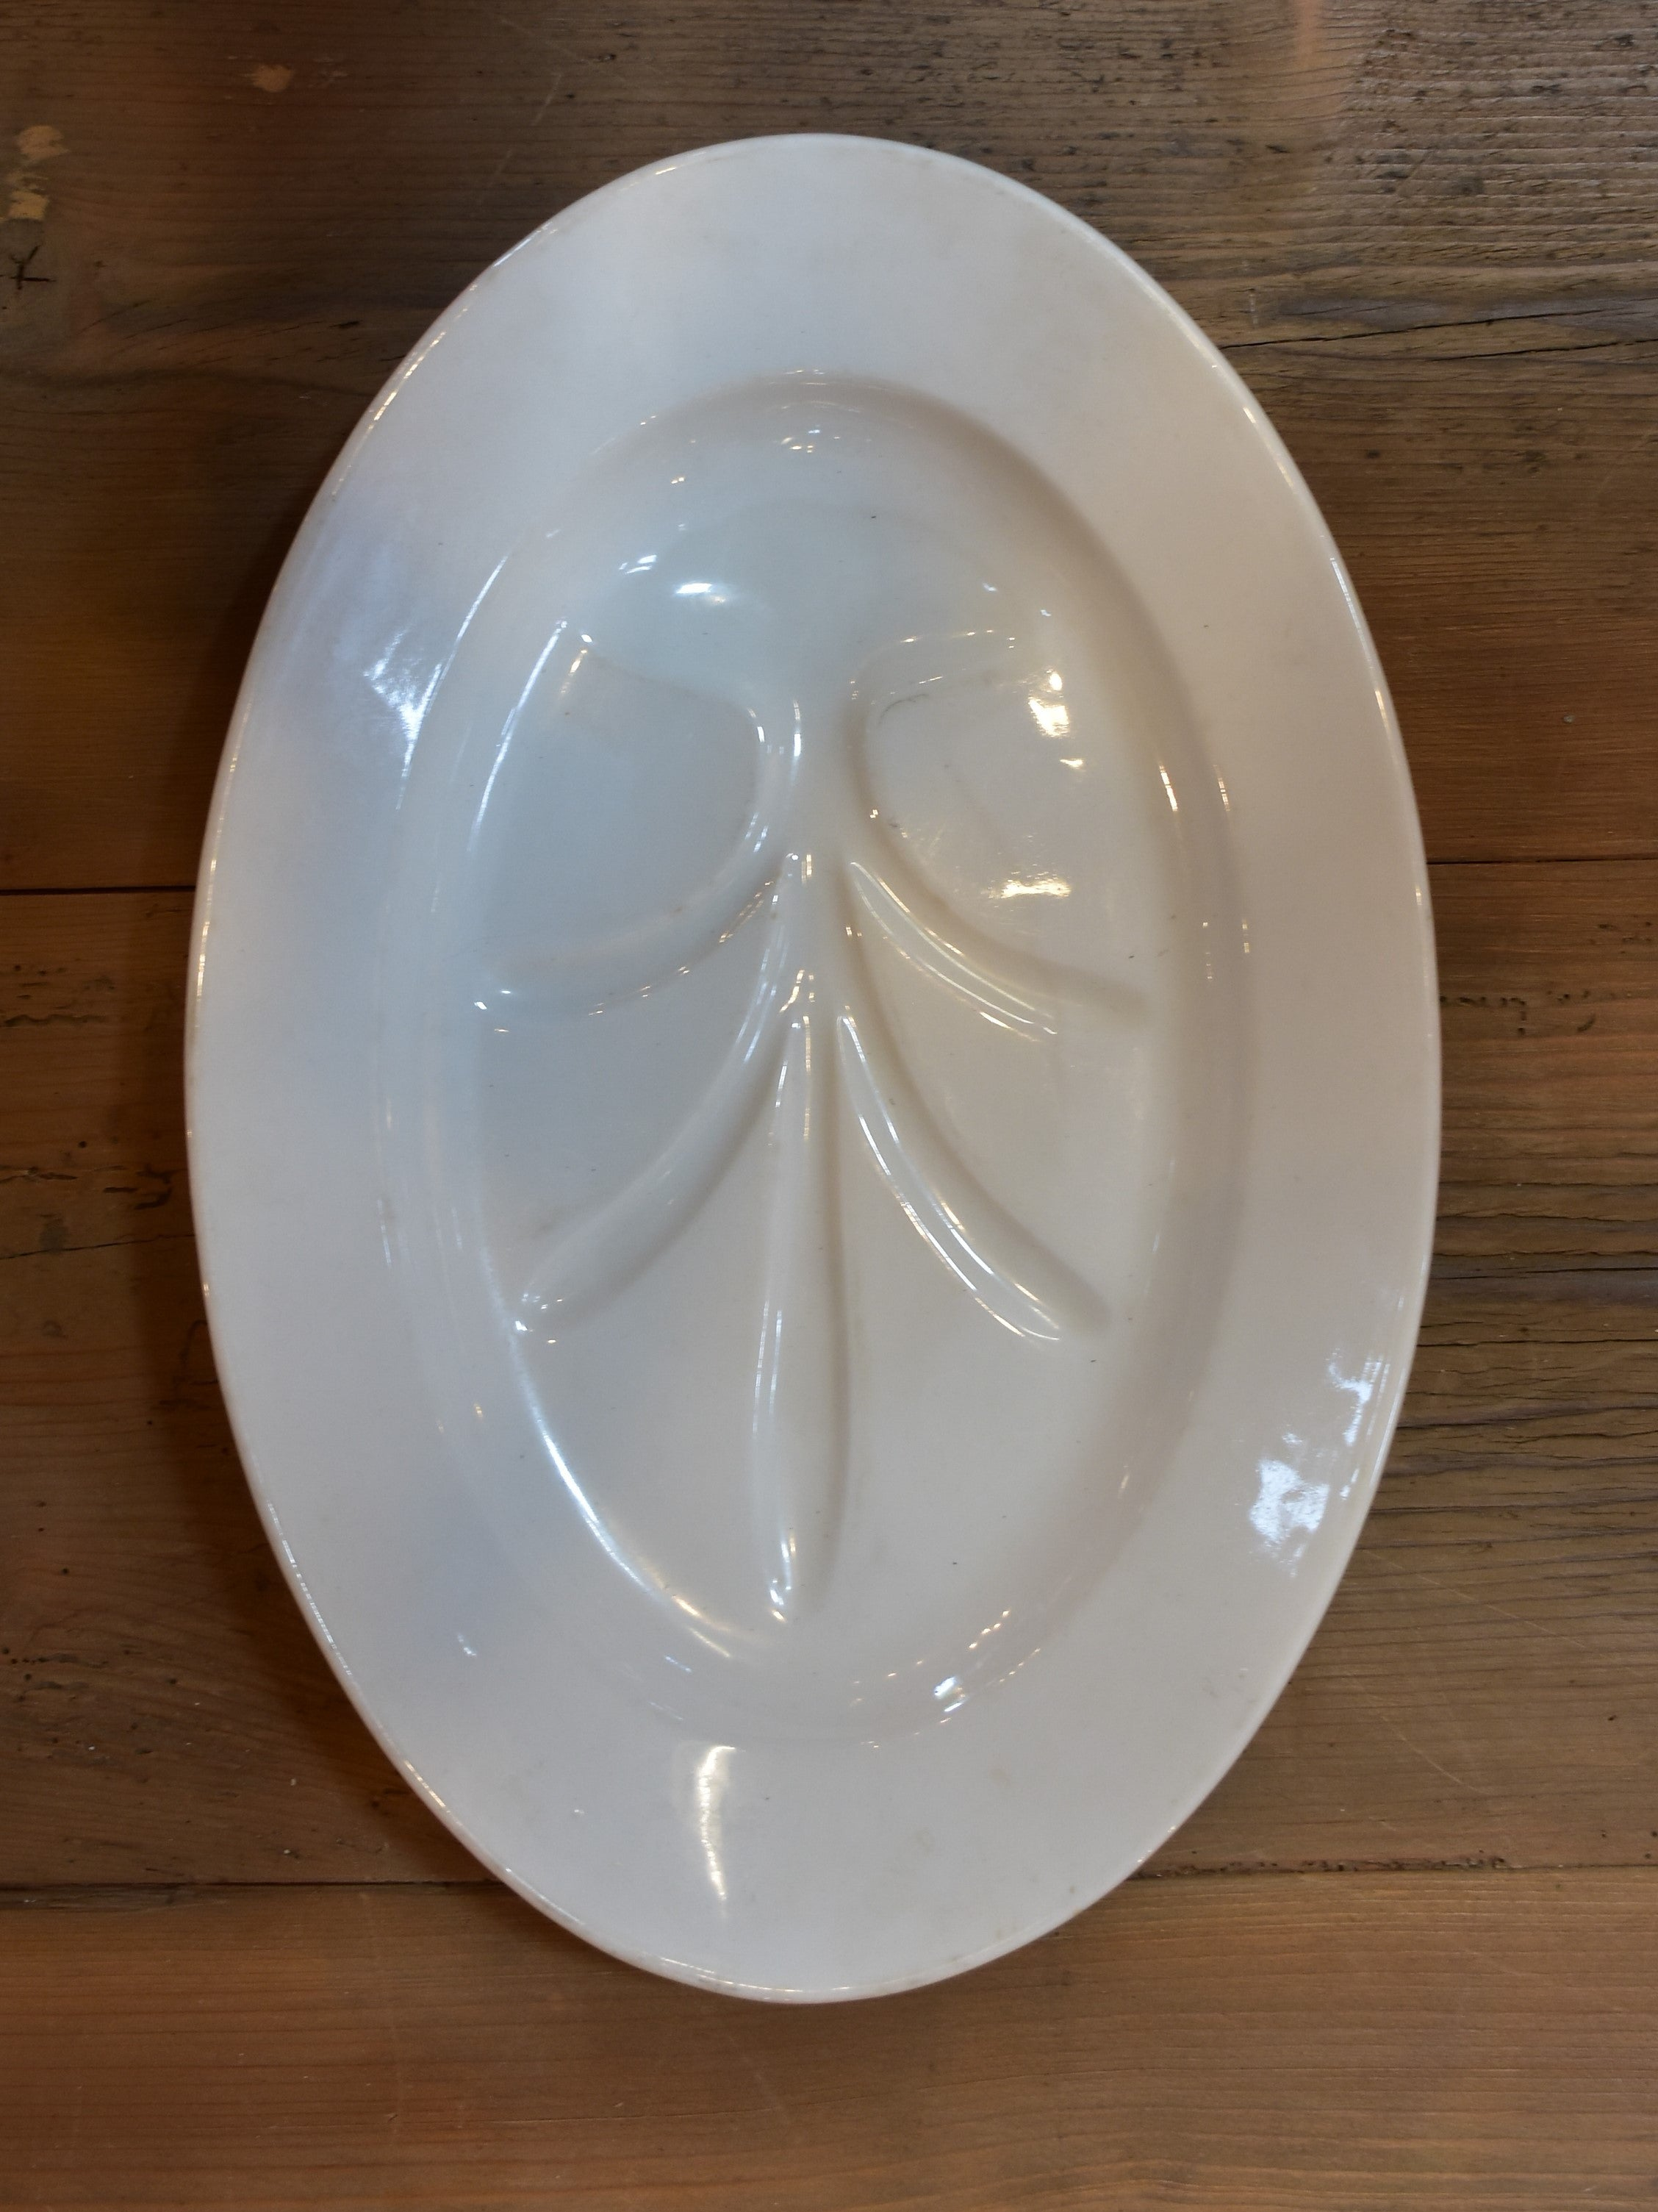 19th century French earthenware platter – oval